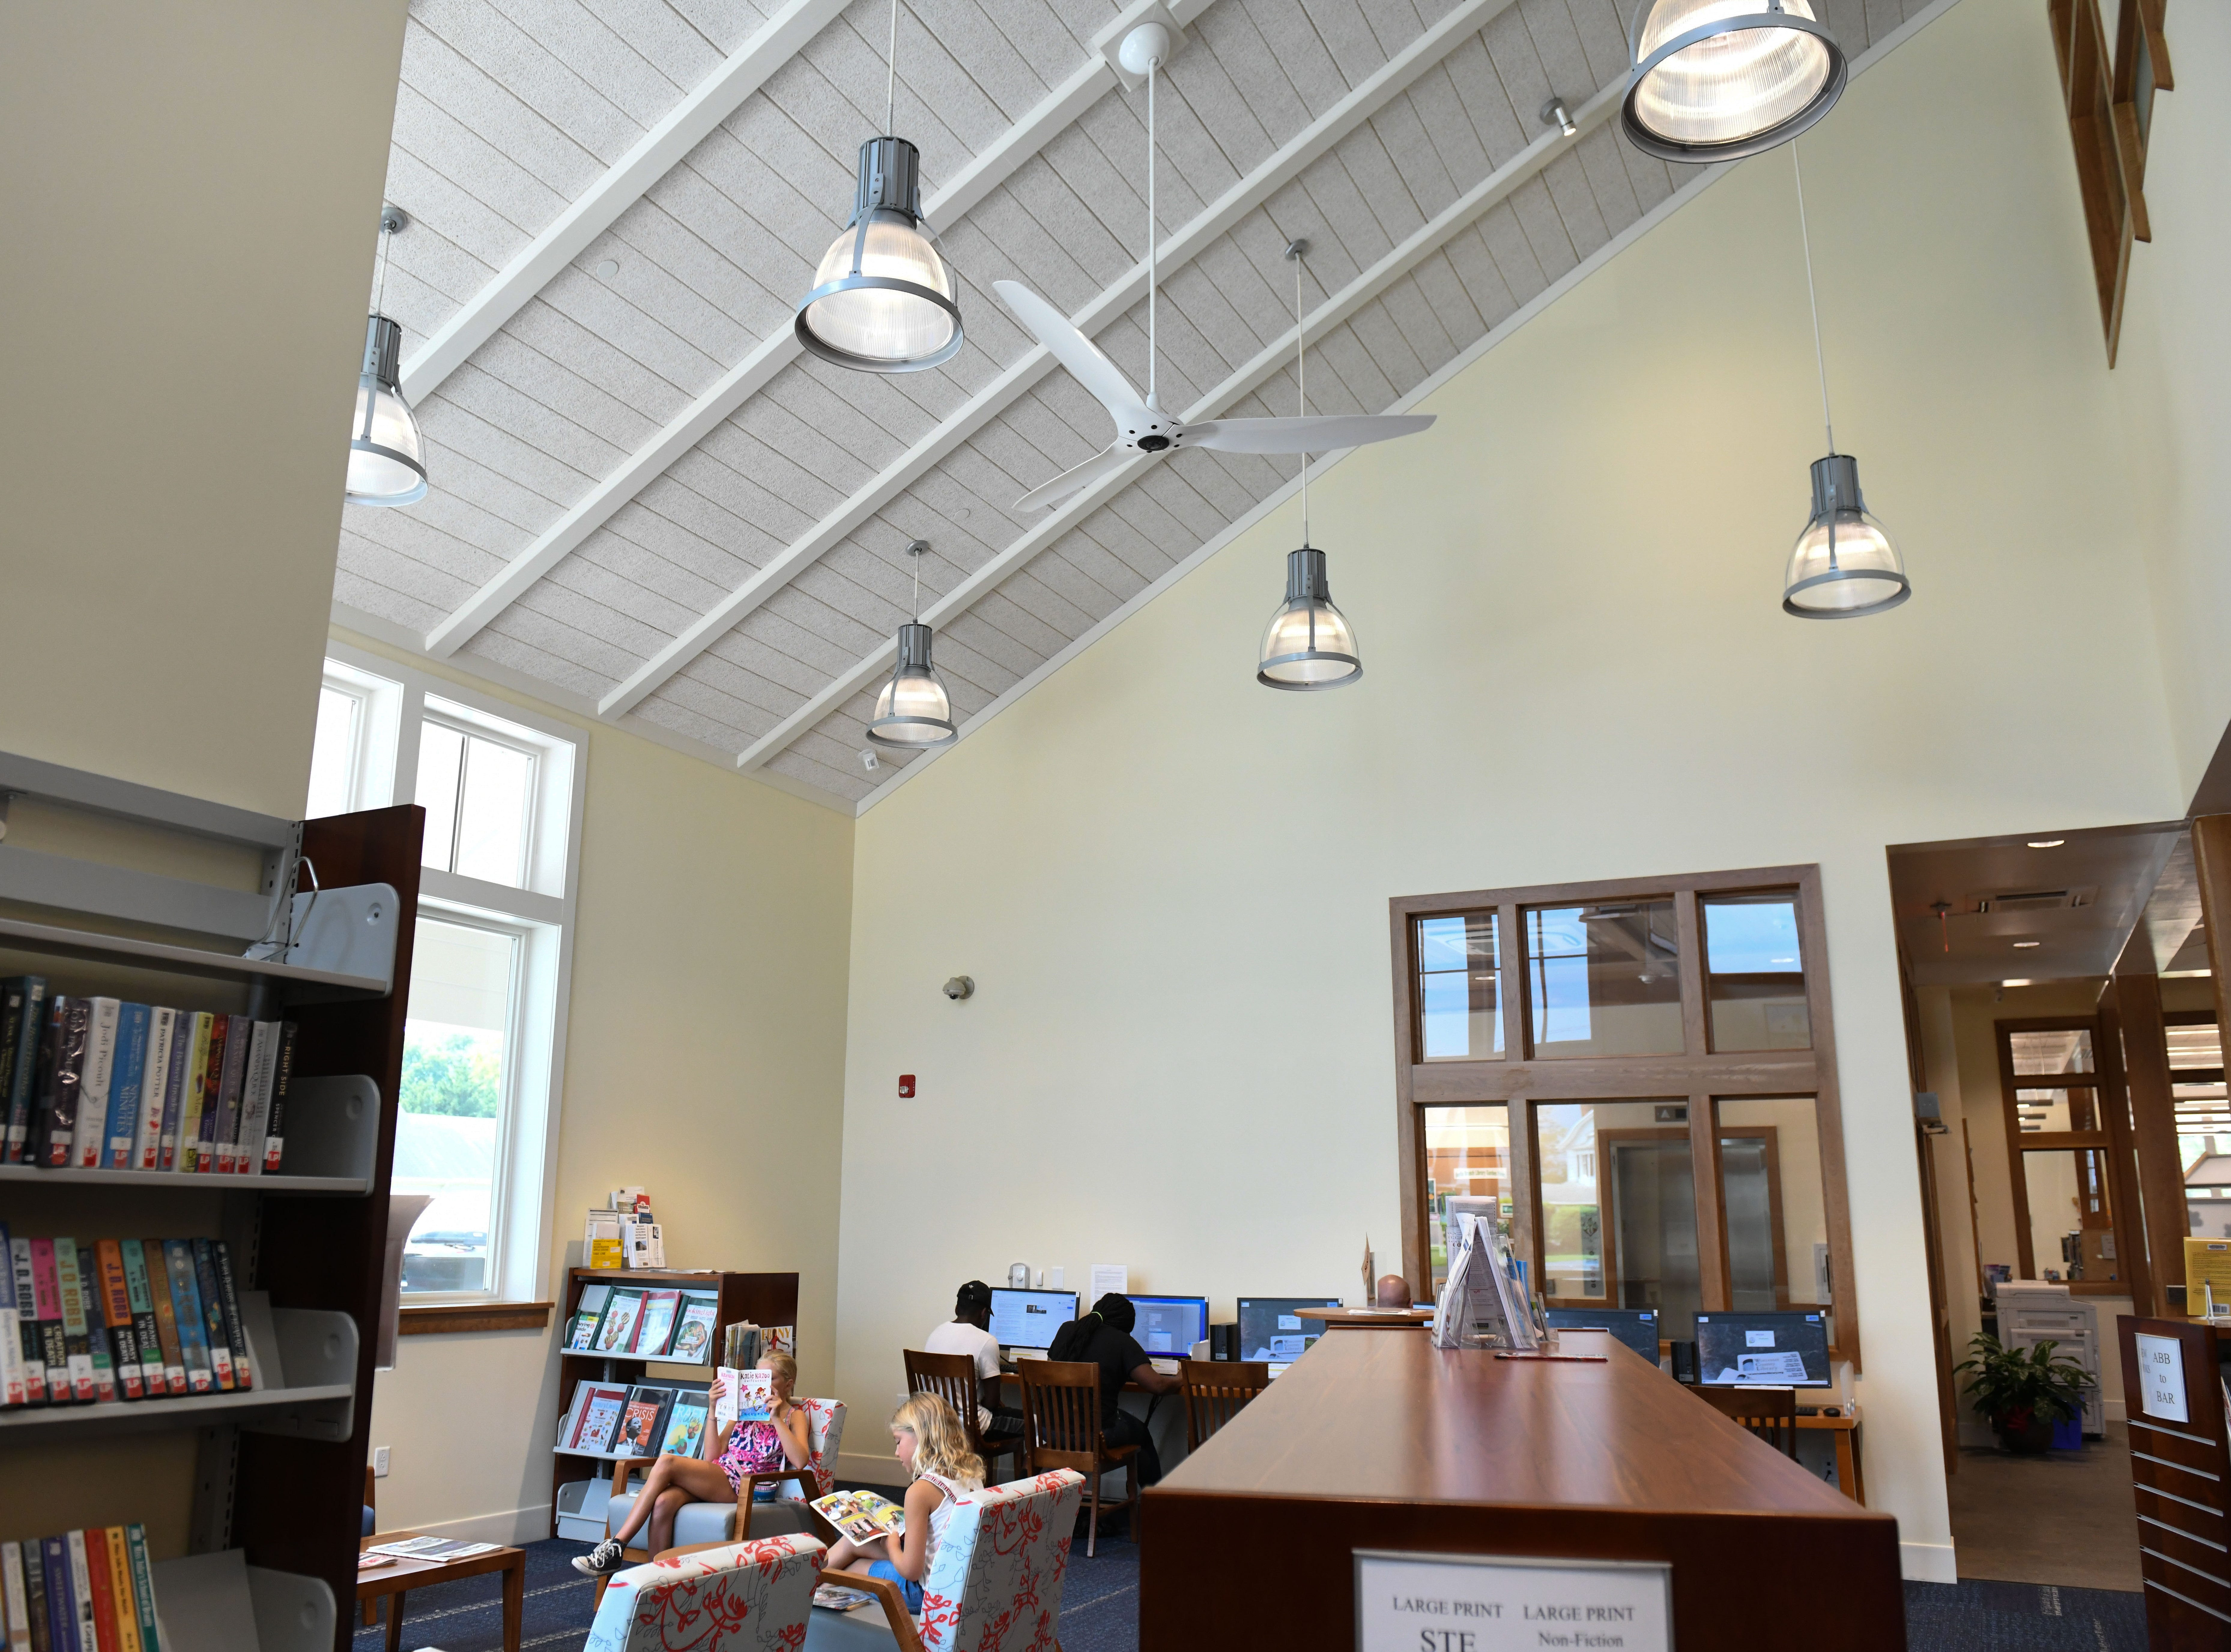 The new 12,000-square-foot Berlin Library facility opened on July 10, 2018 on Harrison Ave. in downtown Berlin.